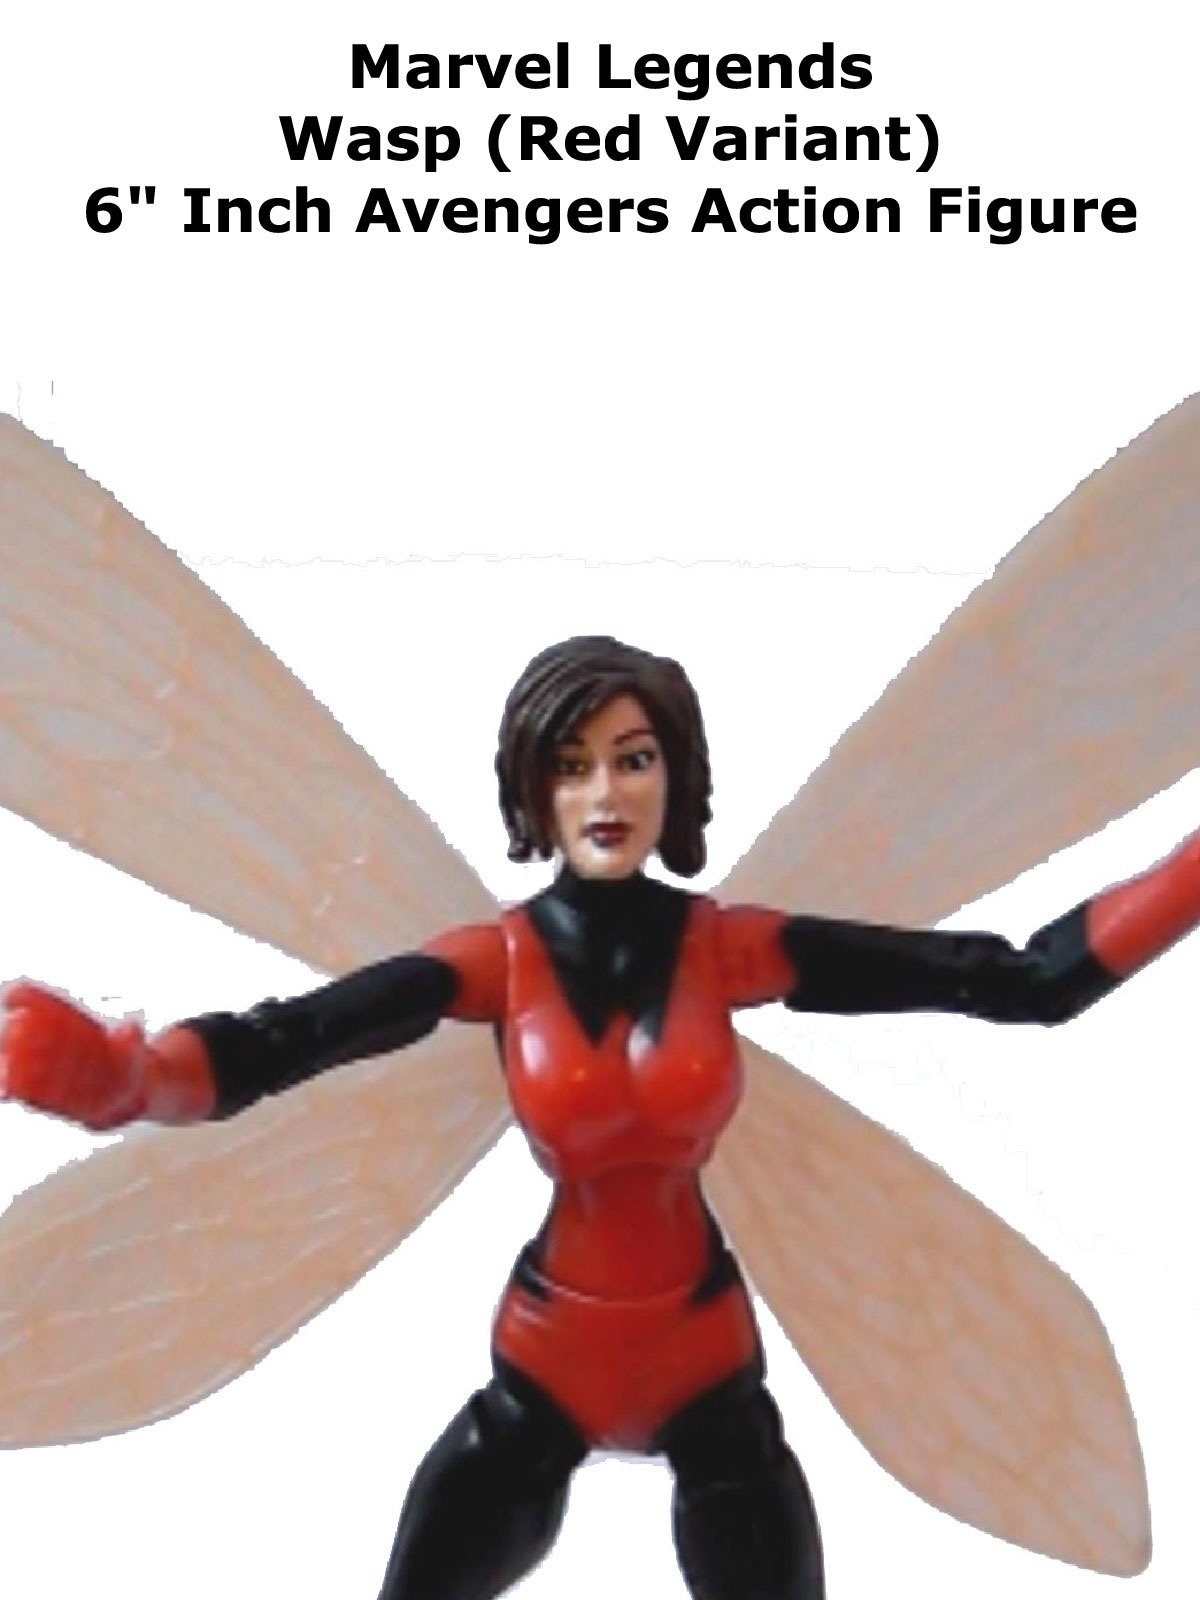 "Review: Marvel Legends Wasp (Red Variant) 6"" Inch Avengers Action Figure"